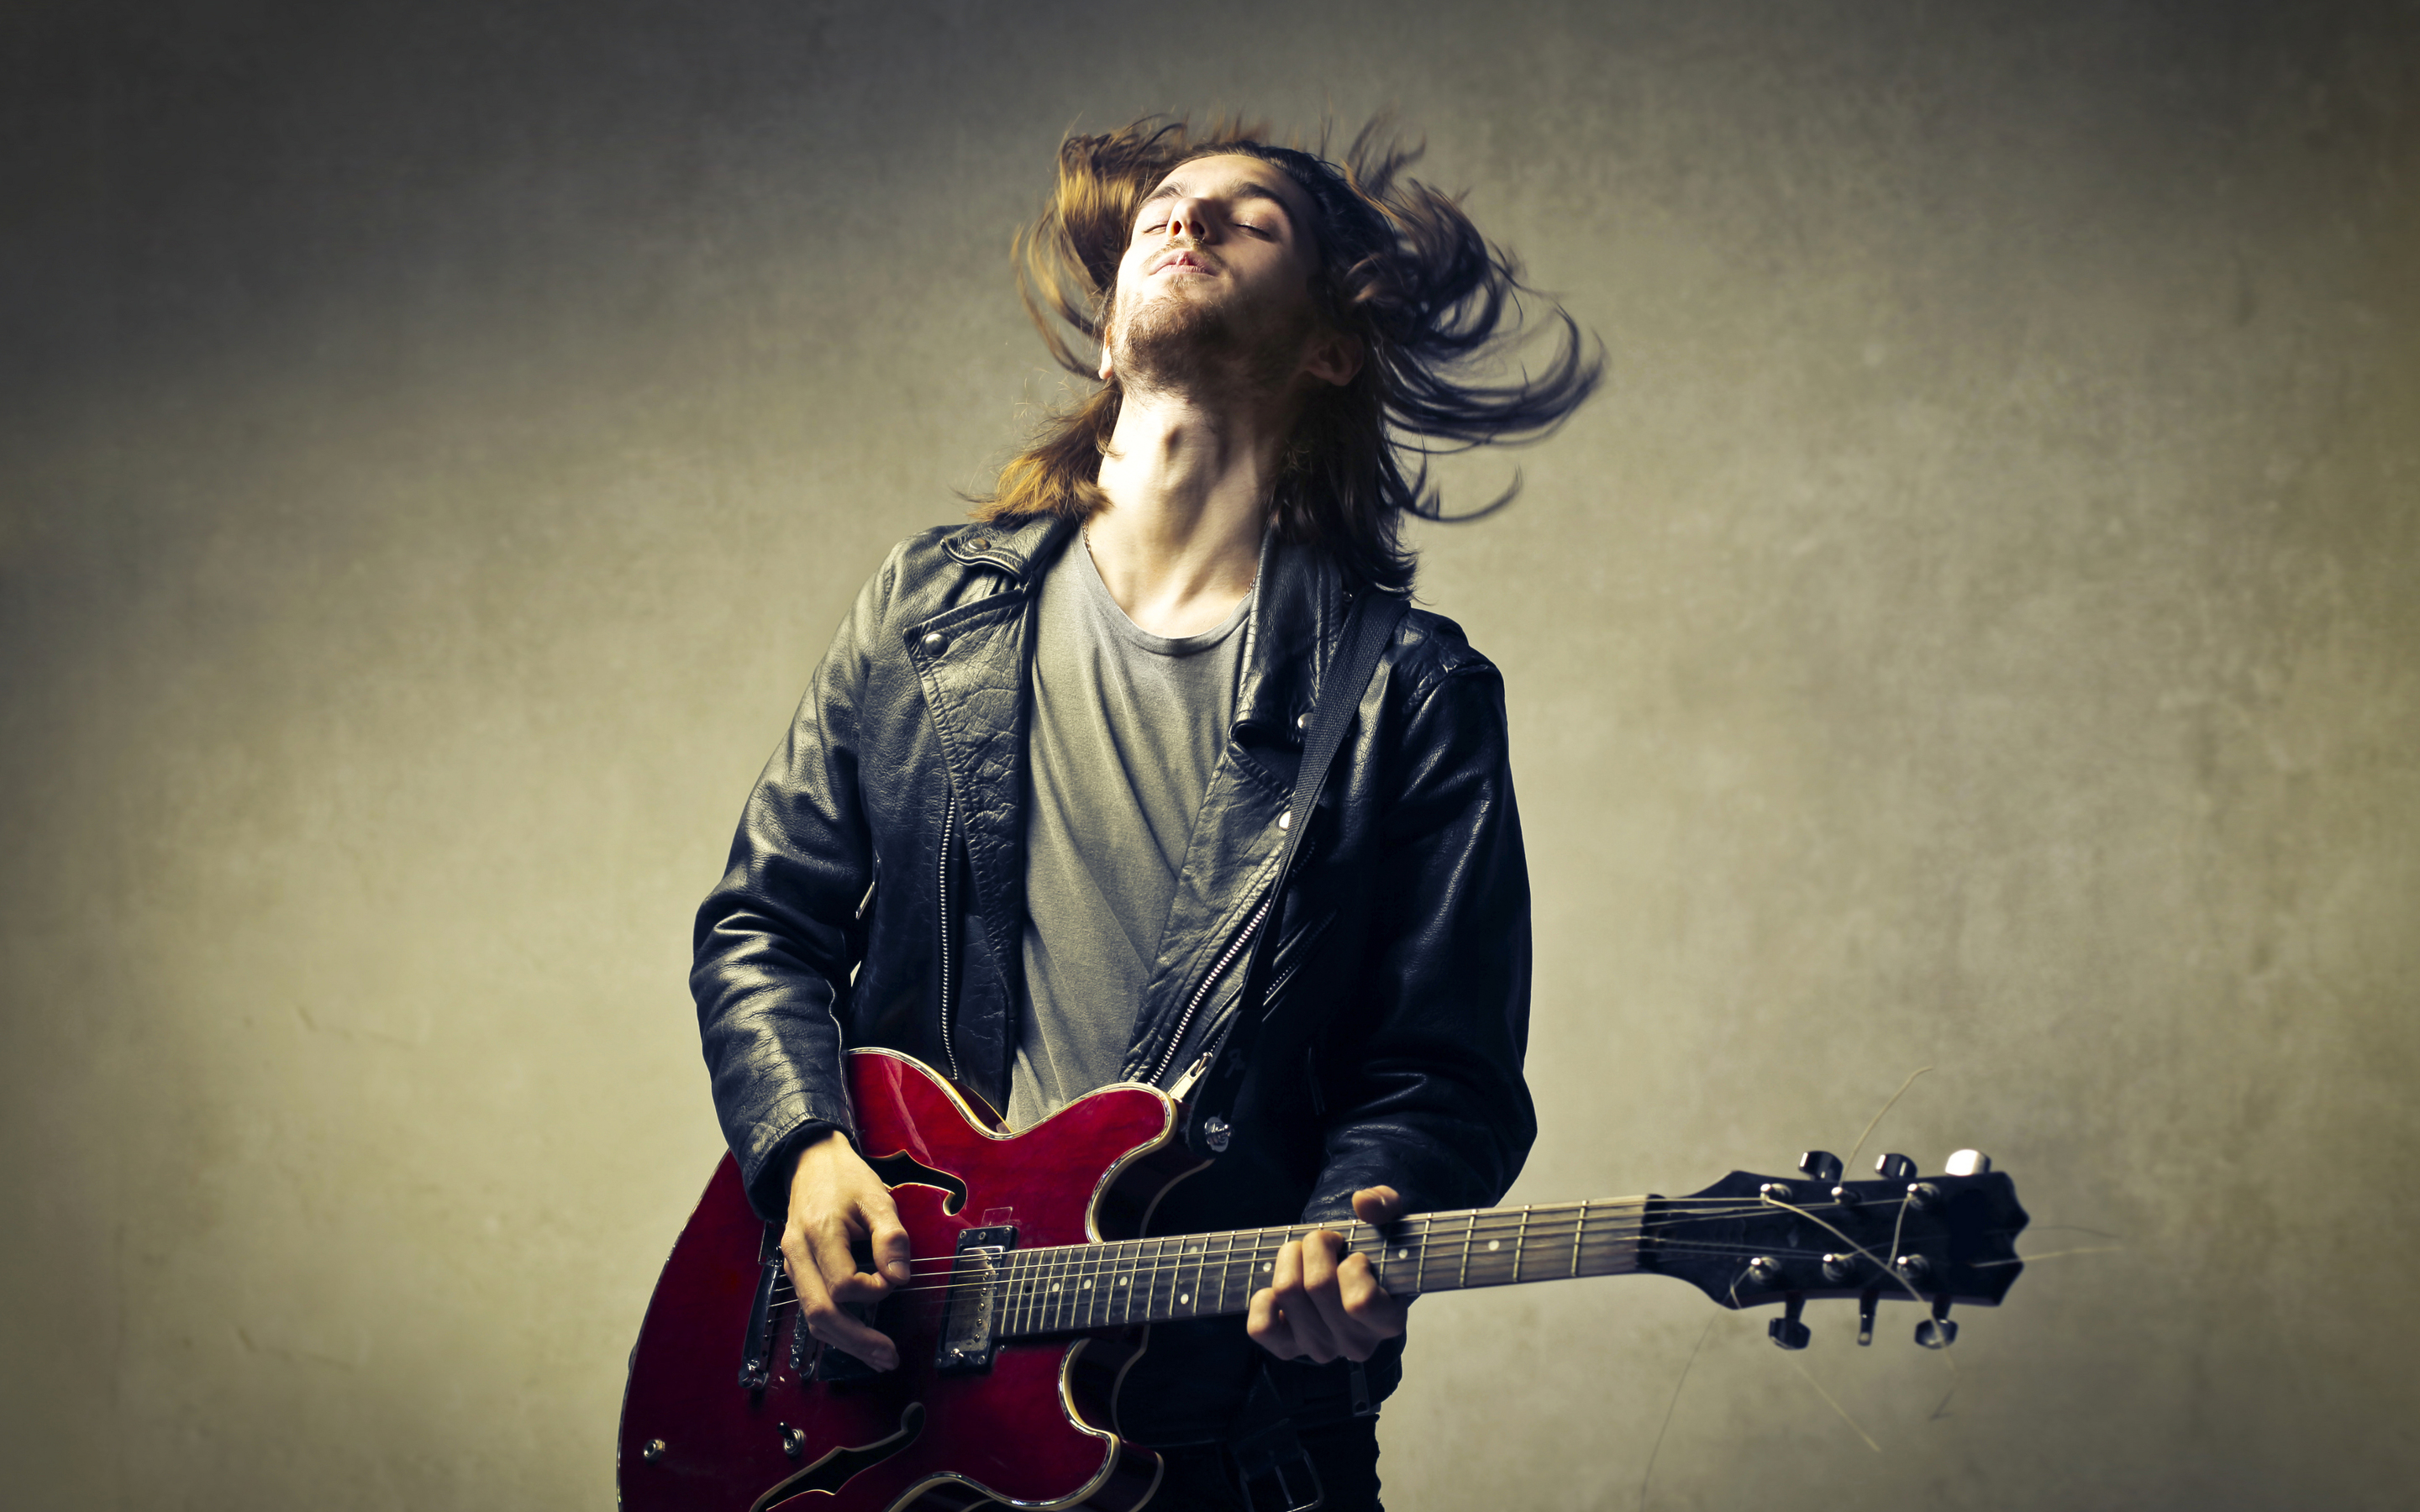 Man with Long Hair Playing a Guitar HD Wallpaper   Background Image    2880x1800 - Wallpaper Abyss